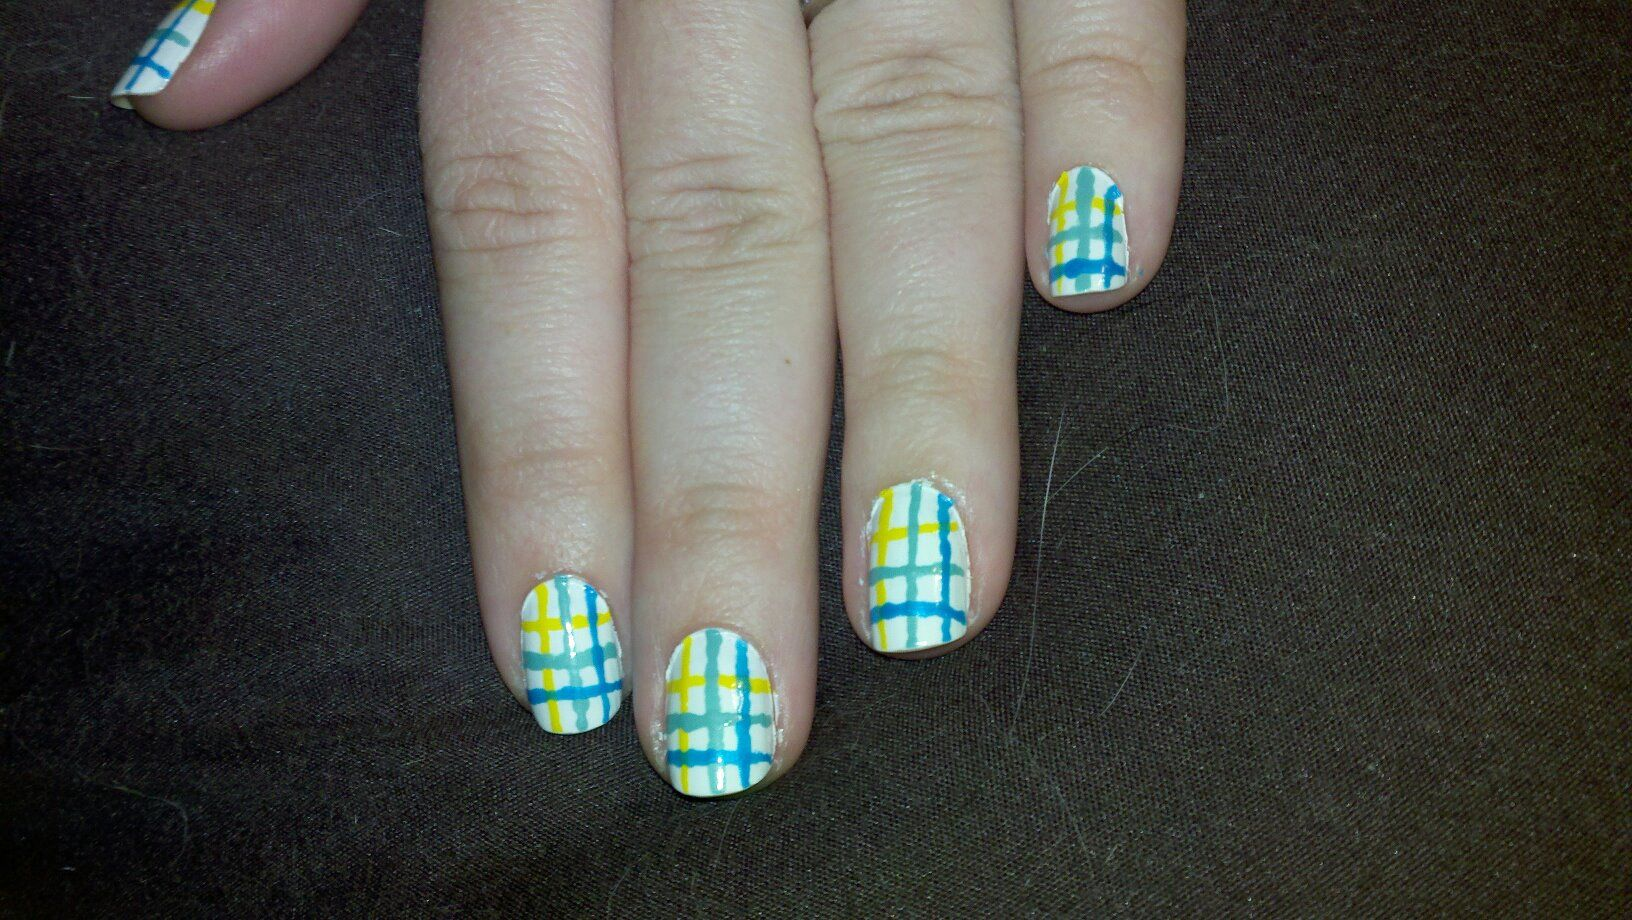 Nail art-inspired by the Great Strides for Cystic Fibrosis walk ...